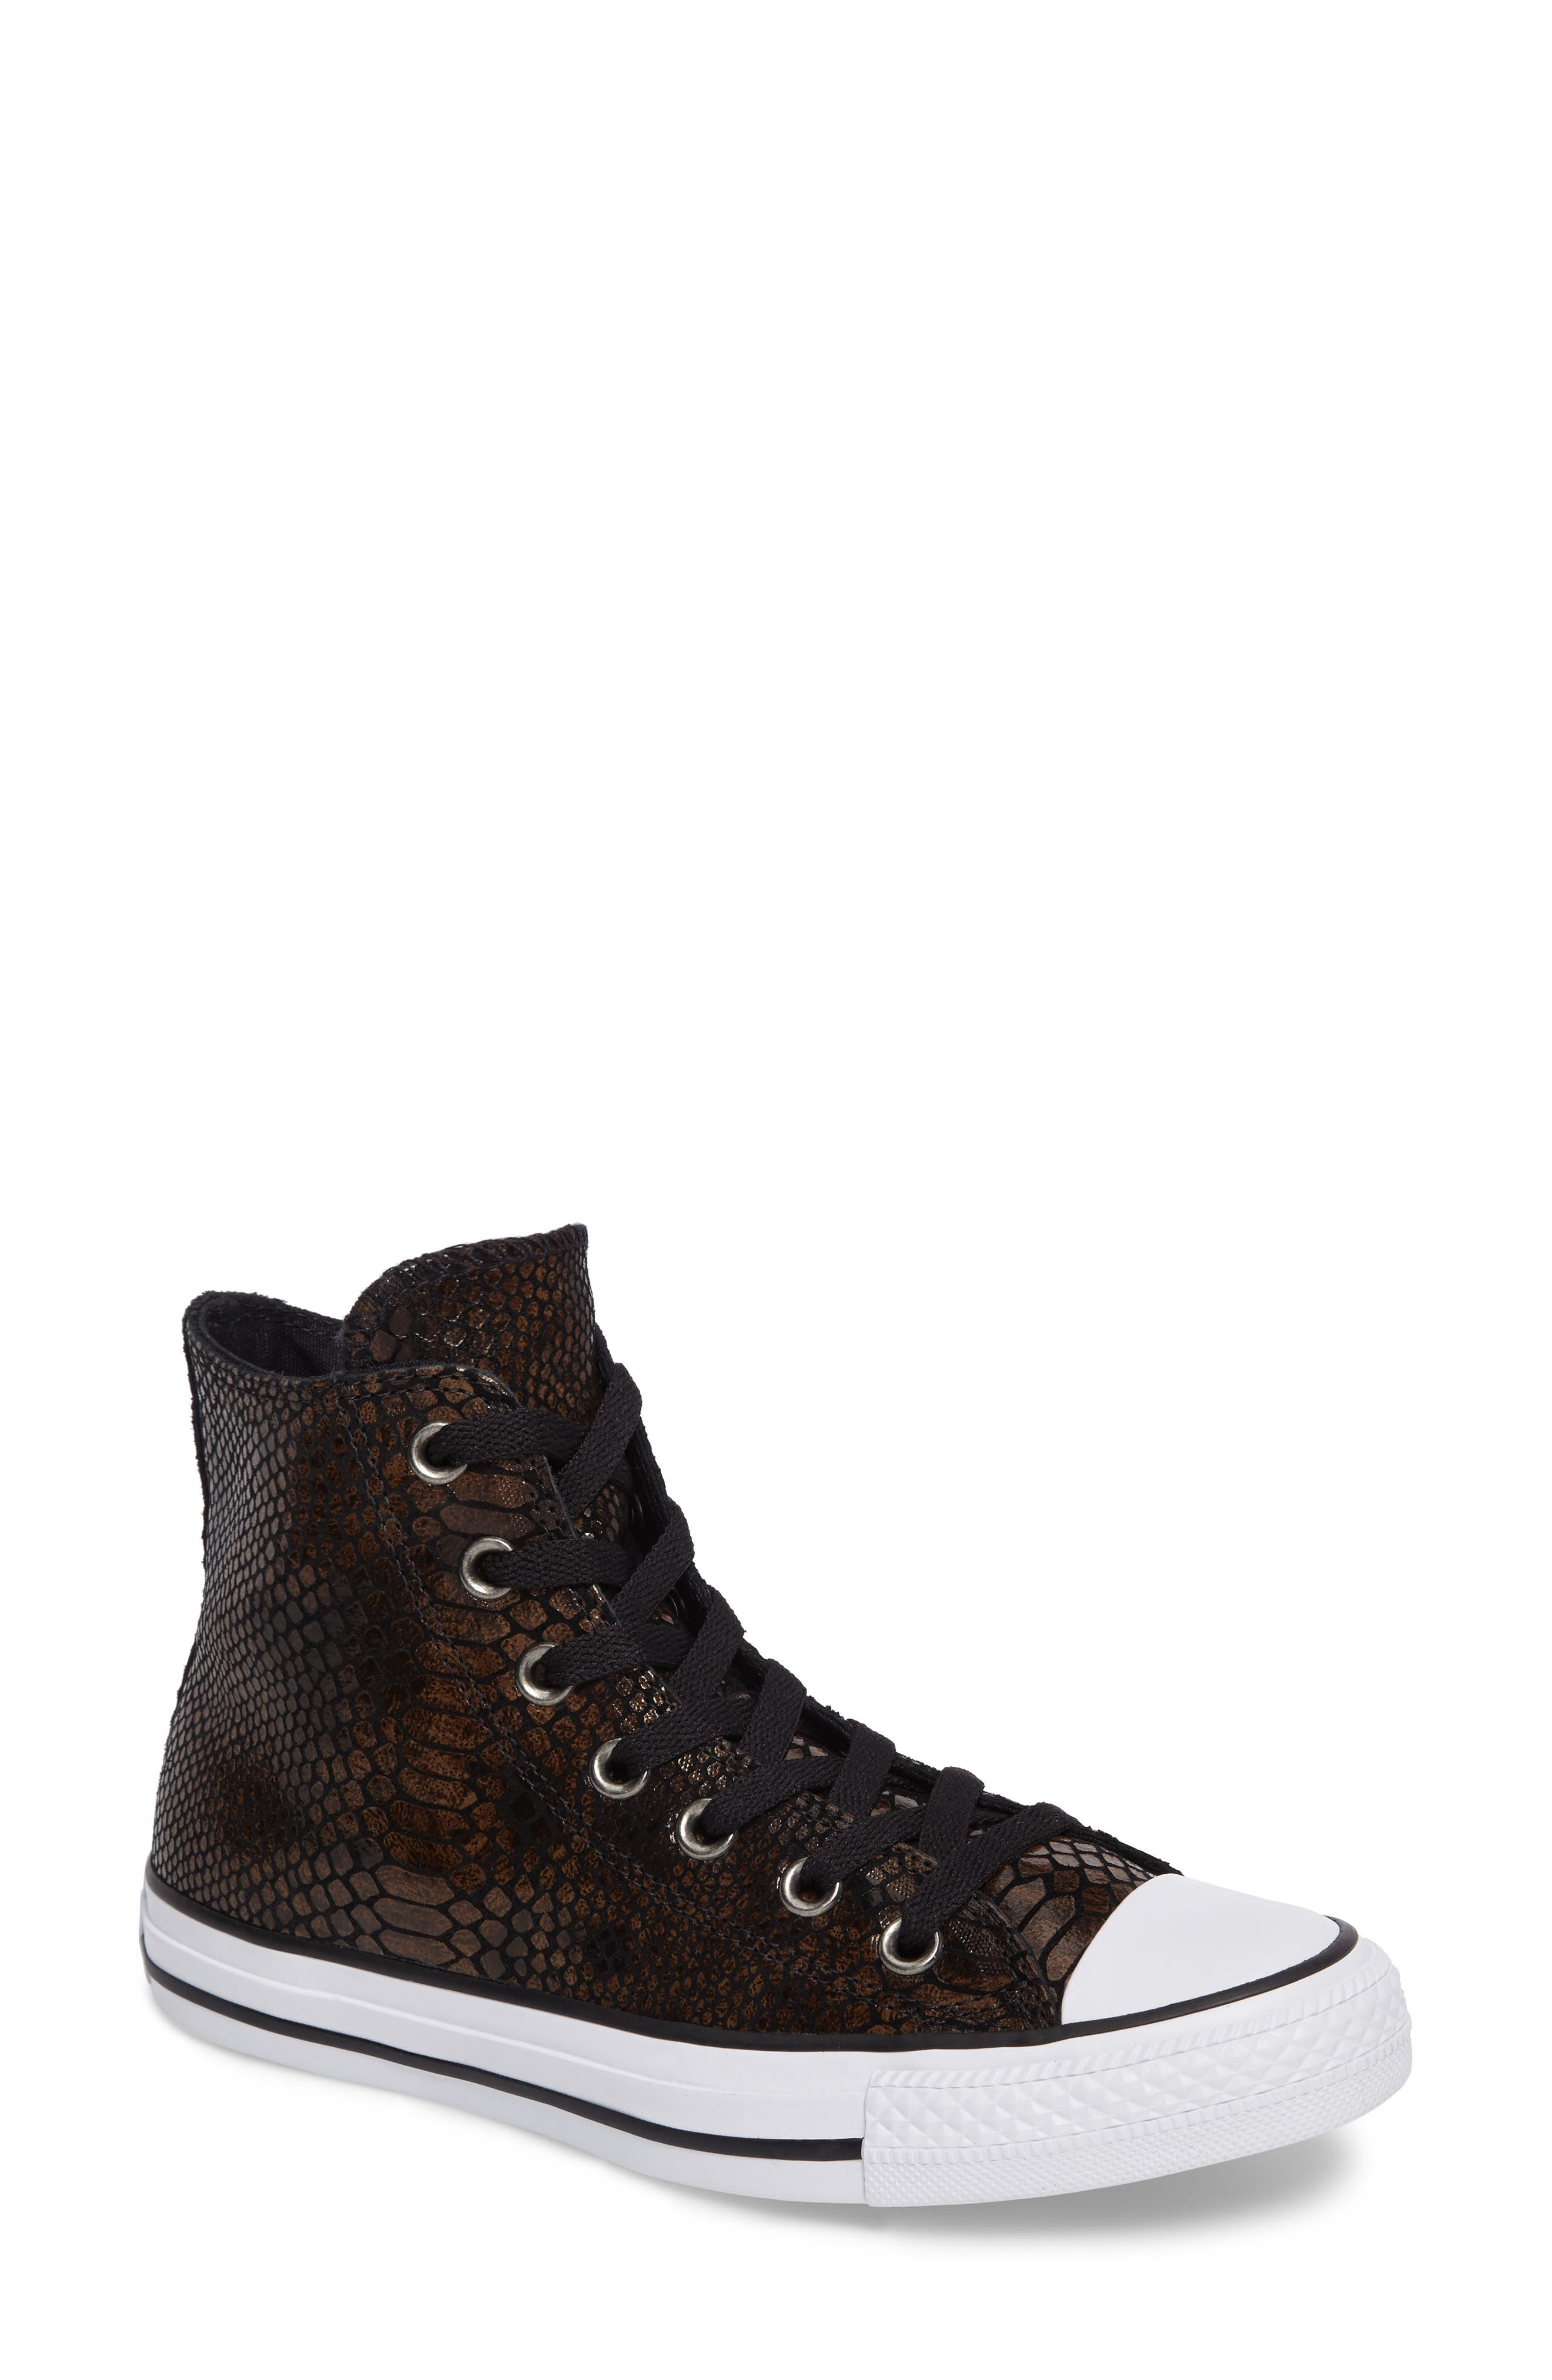 Chuck Taylor<sup>®</sup> All Star<sup>®</sup> Snake Embossed High Top Sneaker,                             Main thumbnail 1, color,                             200